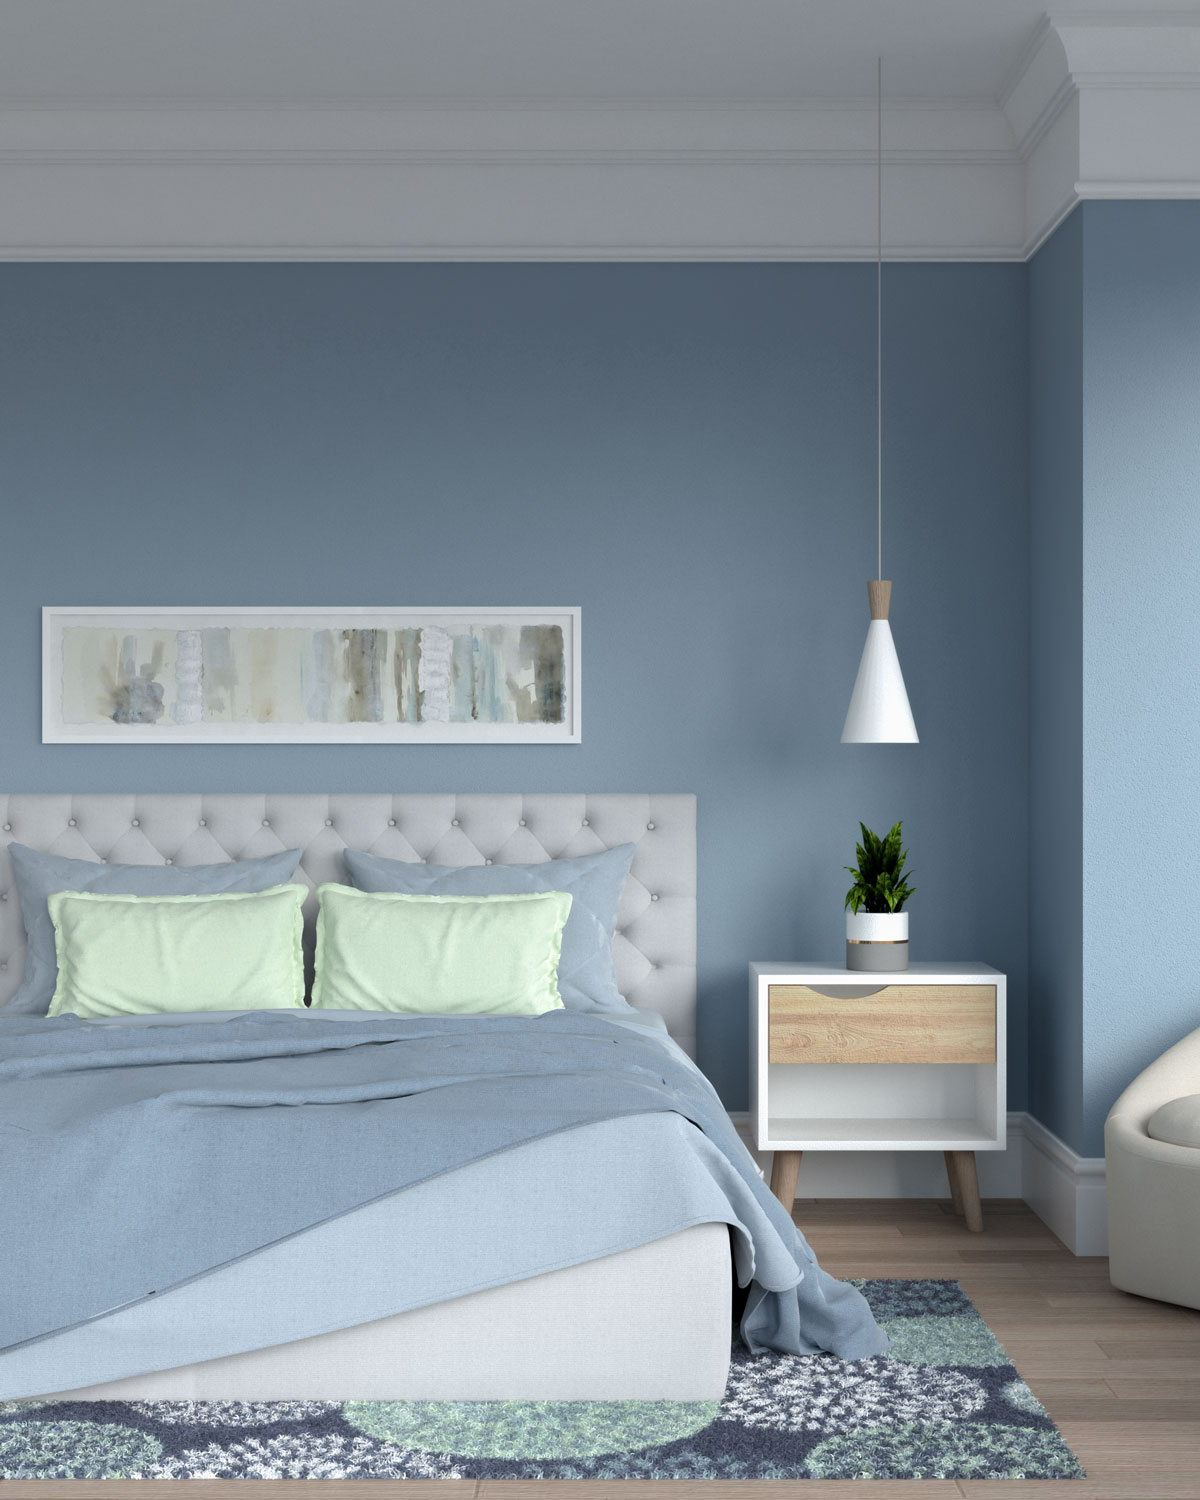 Blue bedroom with sage accents